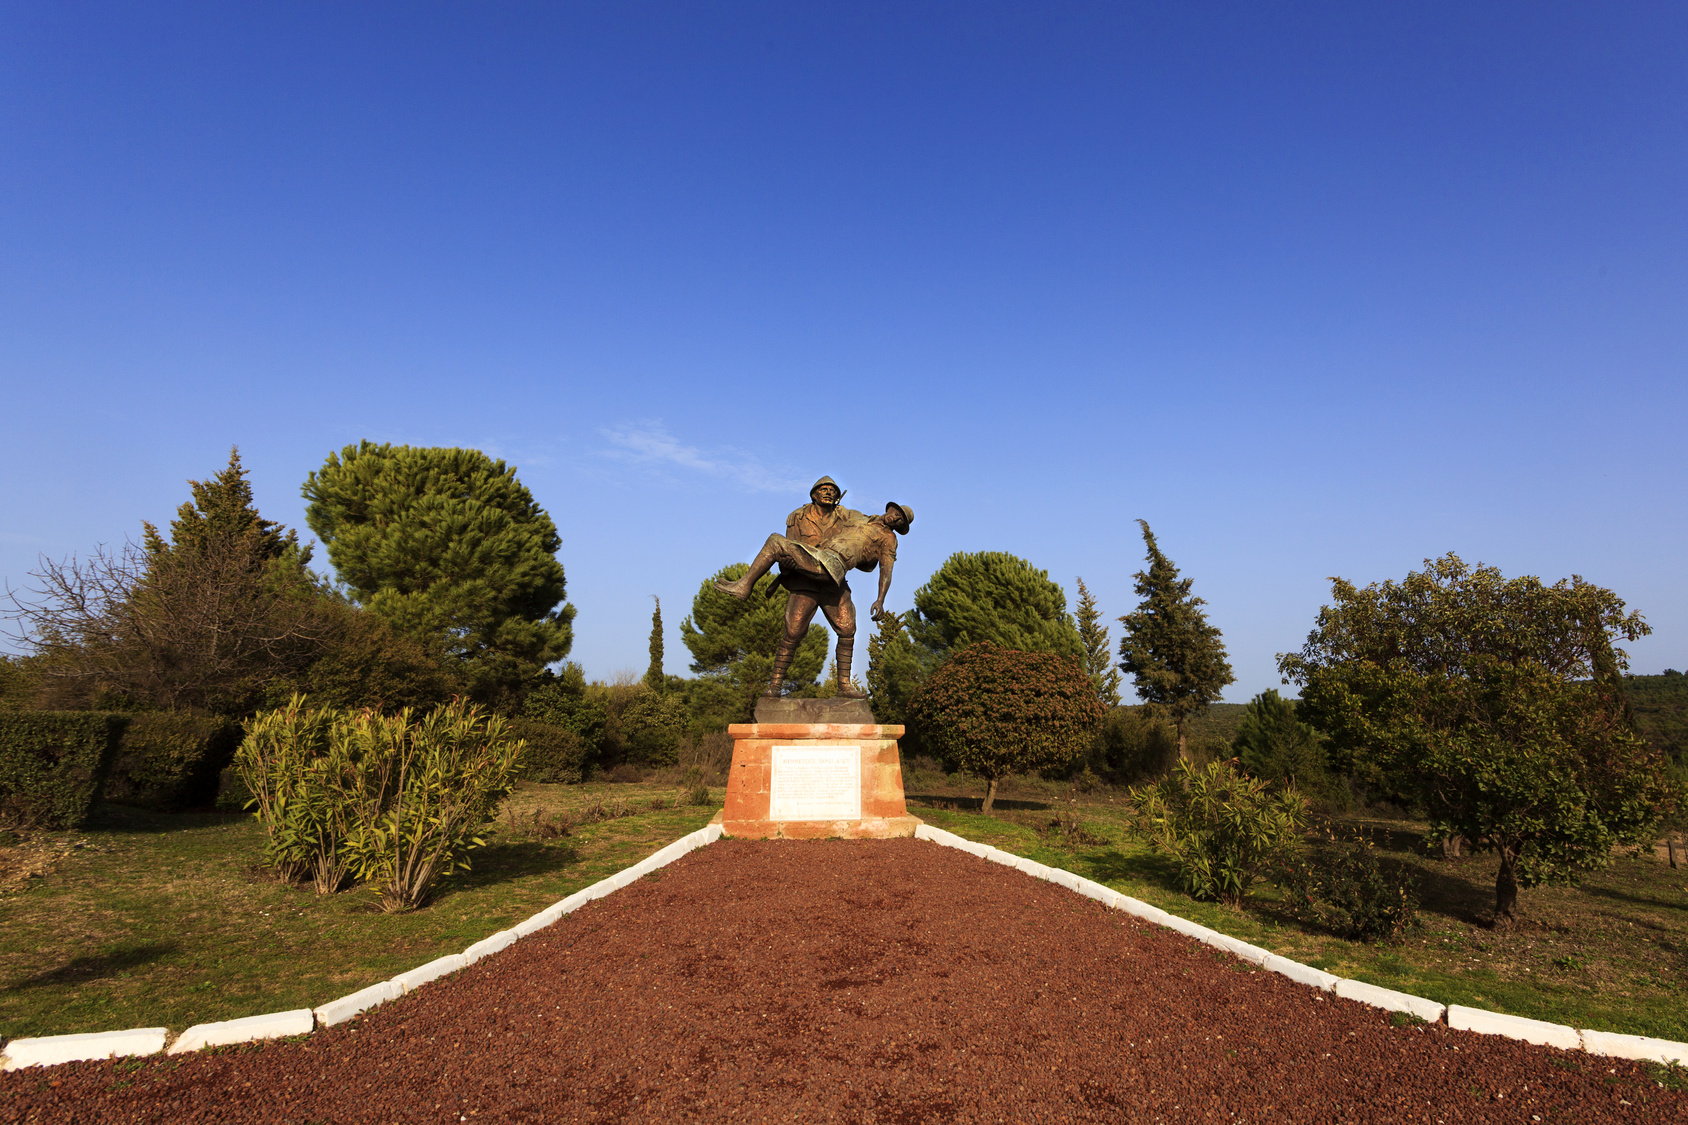 Sculpture of a Turkish Soldier Carrying an Anzac Soldier during the first world war in Gallipoli, anakkale, Turkey